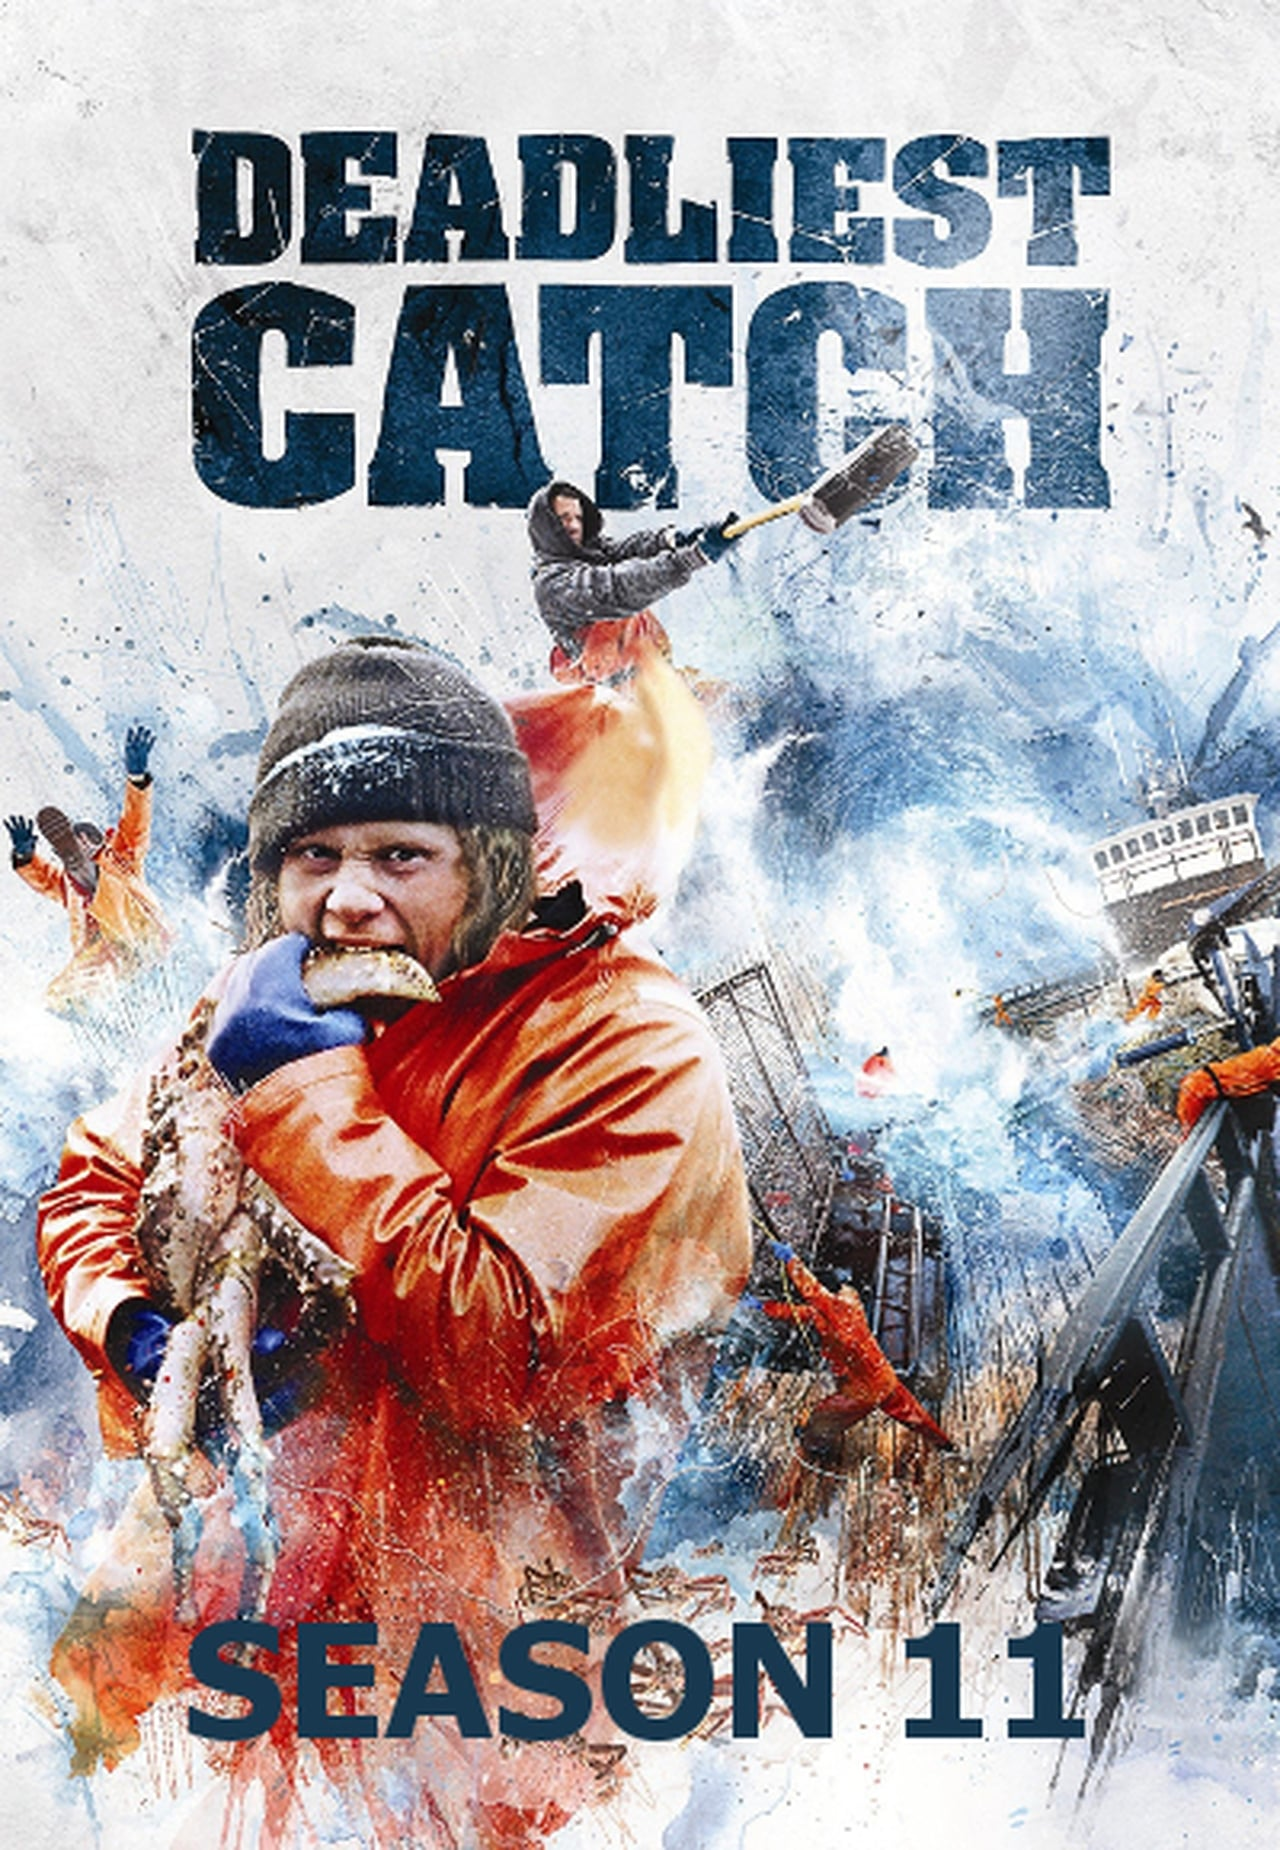 Watch Deadliest Catch Season 11 Online